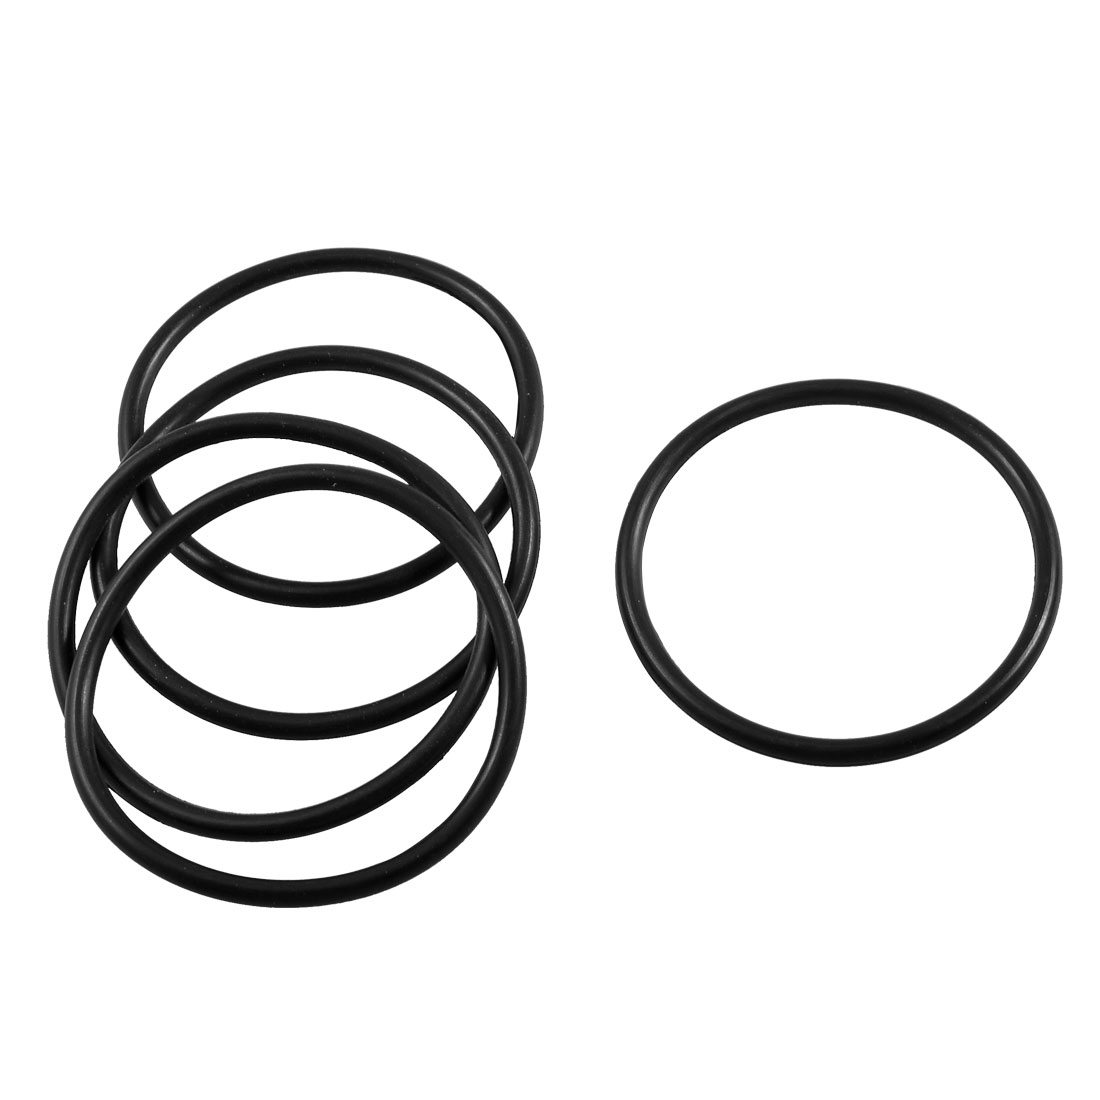 5 Pcs 75mm x 66mm x 4.6mm Industrial Black Rubber O Ring Oil Seal Gaskets